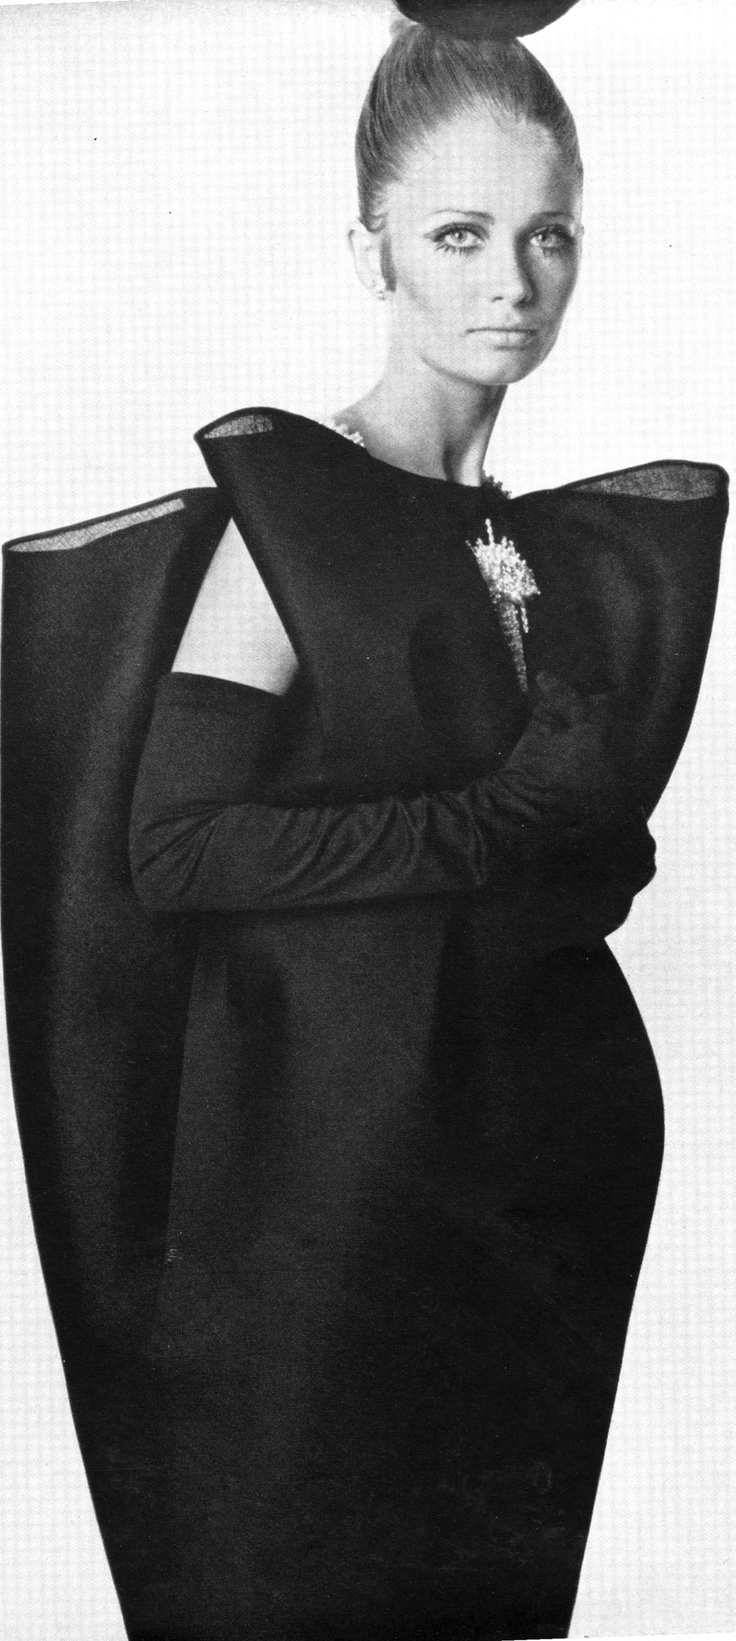 "A Balenciaga dress of black gazar, ""suspended like butterflies in mid-air on diamanté straps and drawn close towards the knee,"" as described by Vogue. The 'wings' are indented with a single diamanté jewel. Photo from Vogue, September 1967."